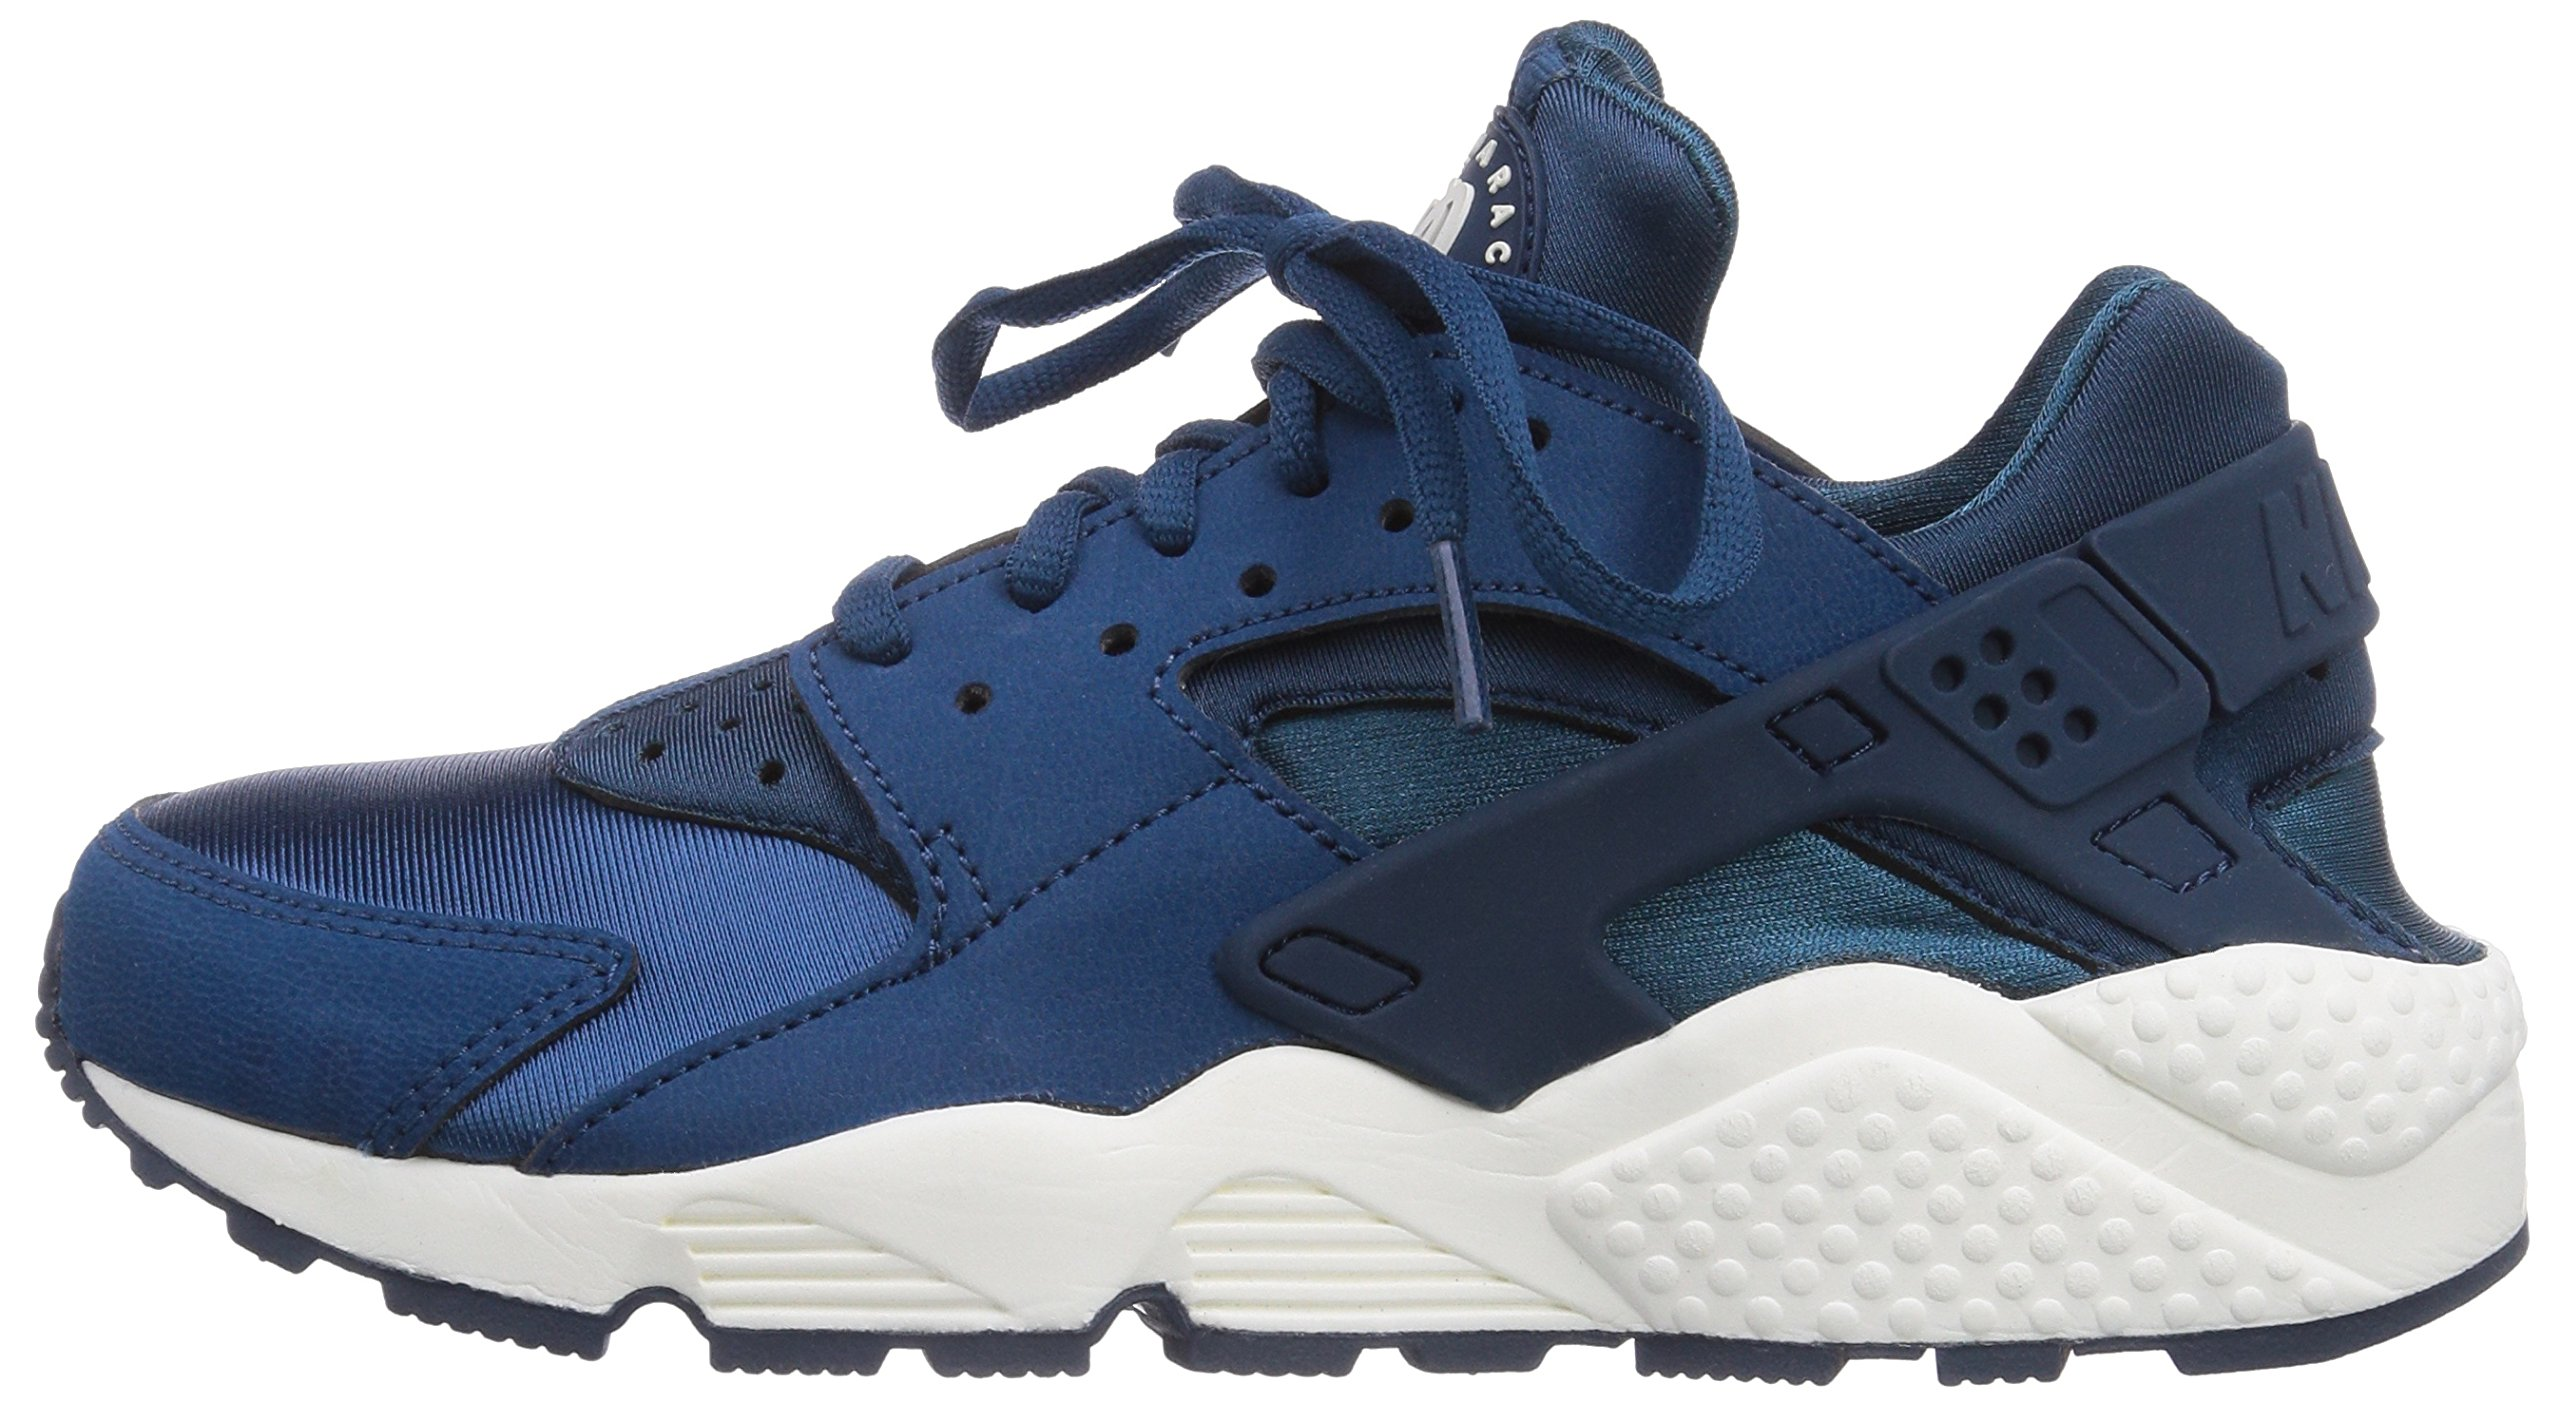 81XdFKEiTKL - Nike Women's Air Huarache Low-Top Trainer